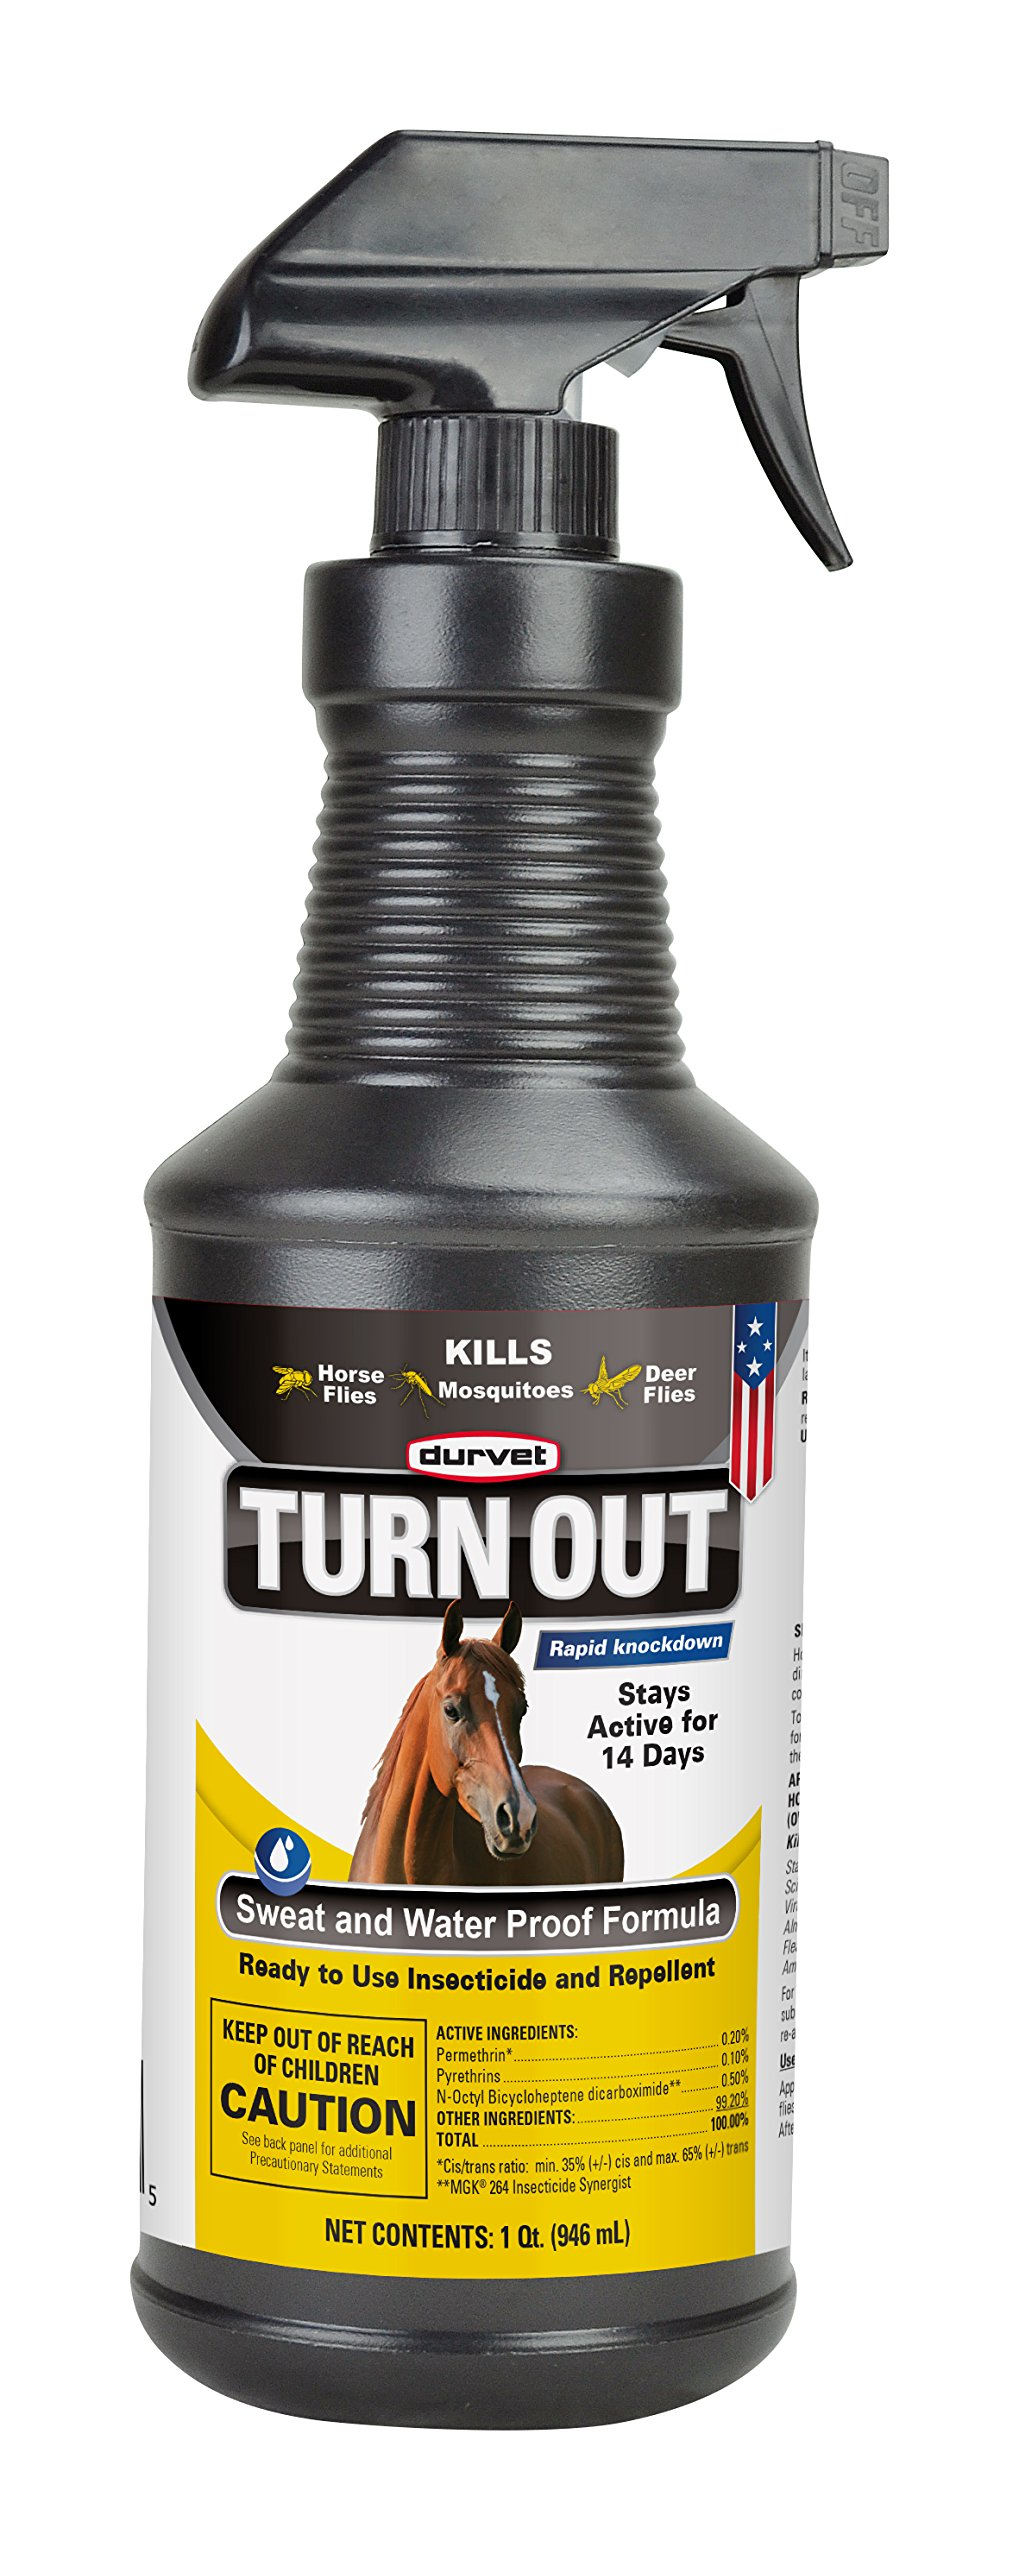 Durvet TURN OUT Insecticide and Repellent for Horses and Dogs. Sweat and Water Proof Formula Stays Active for Up to 14 Days. Spray or Wipe On. Ready-To-Use 32-Ounce Spray Bottle. Made in USA. by TURN OUIT (Image #1)